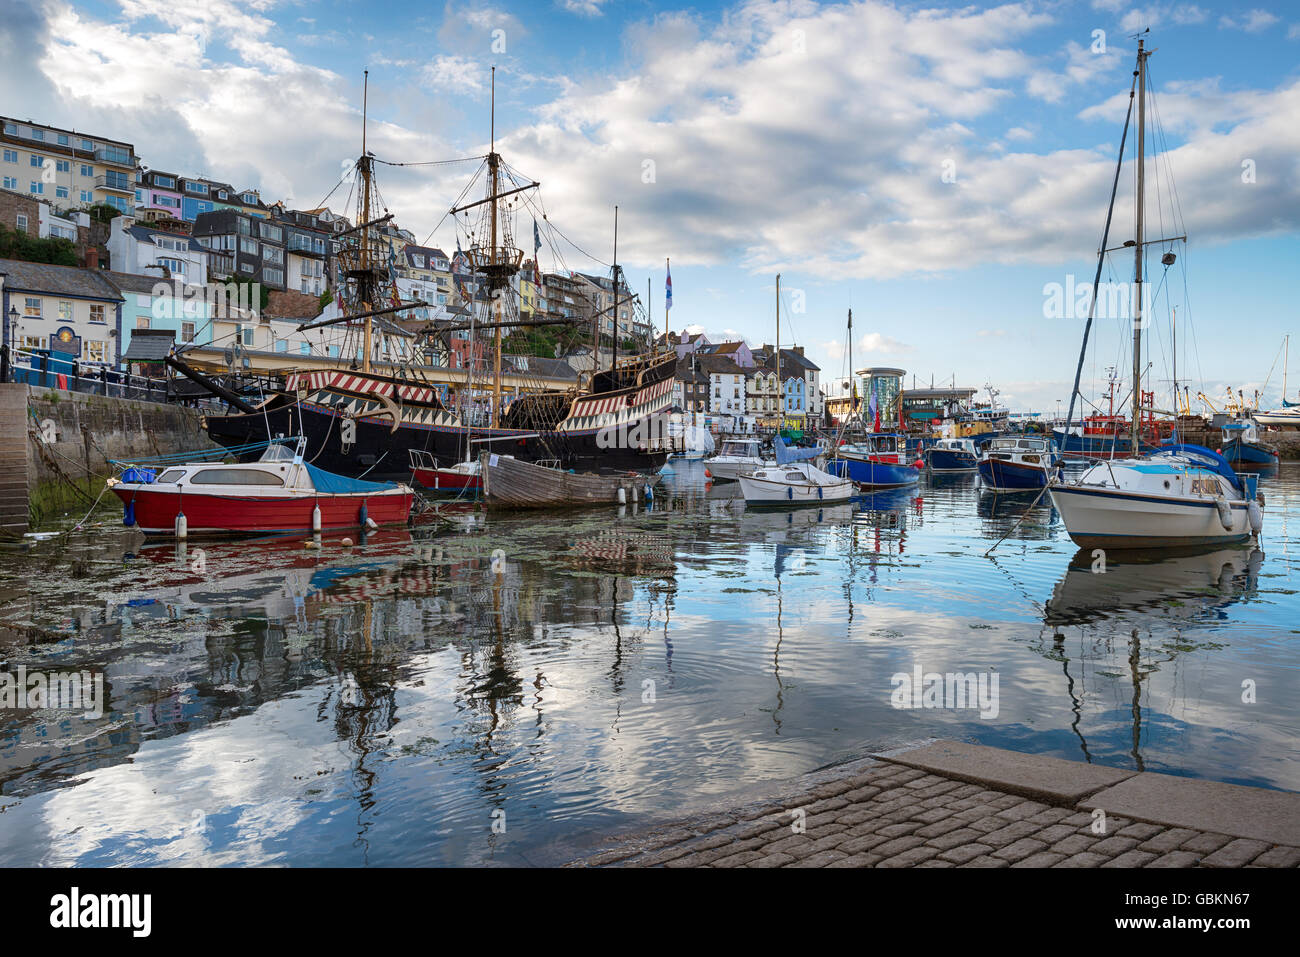 Boats in the harbour at Brixham an historic fishing port in Torbay on the south coast of Devon - Stock Image